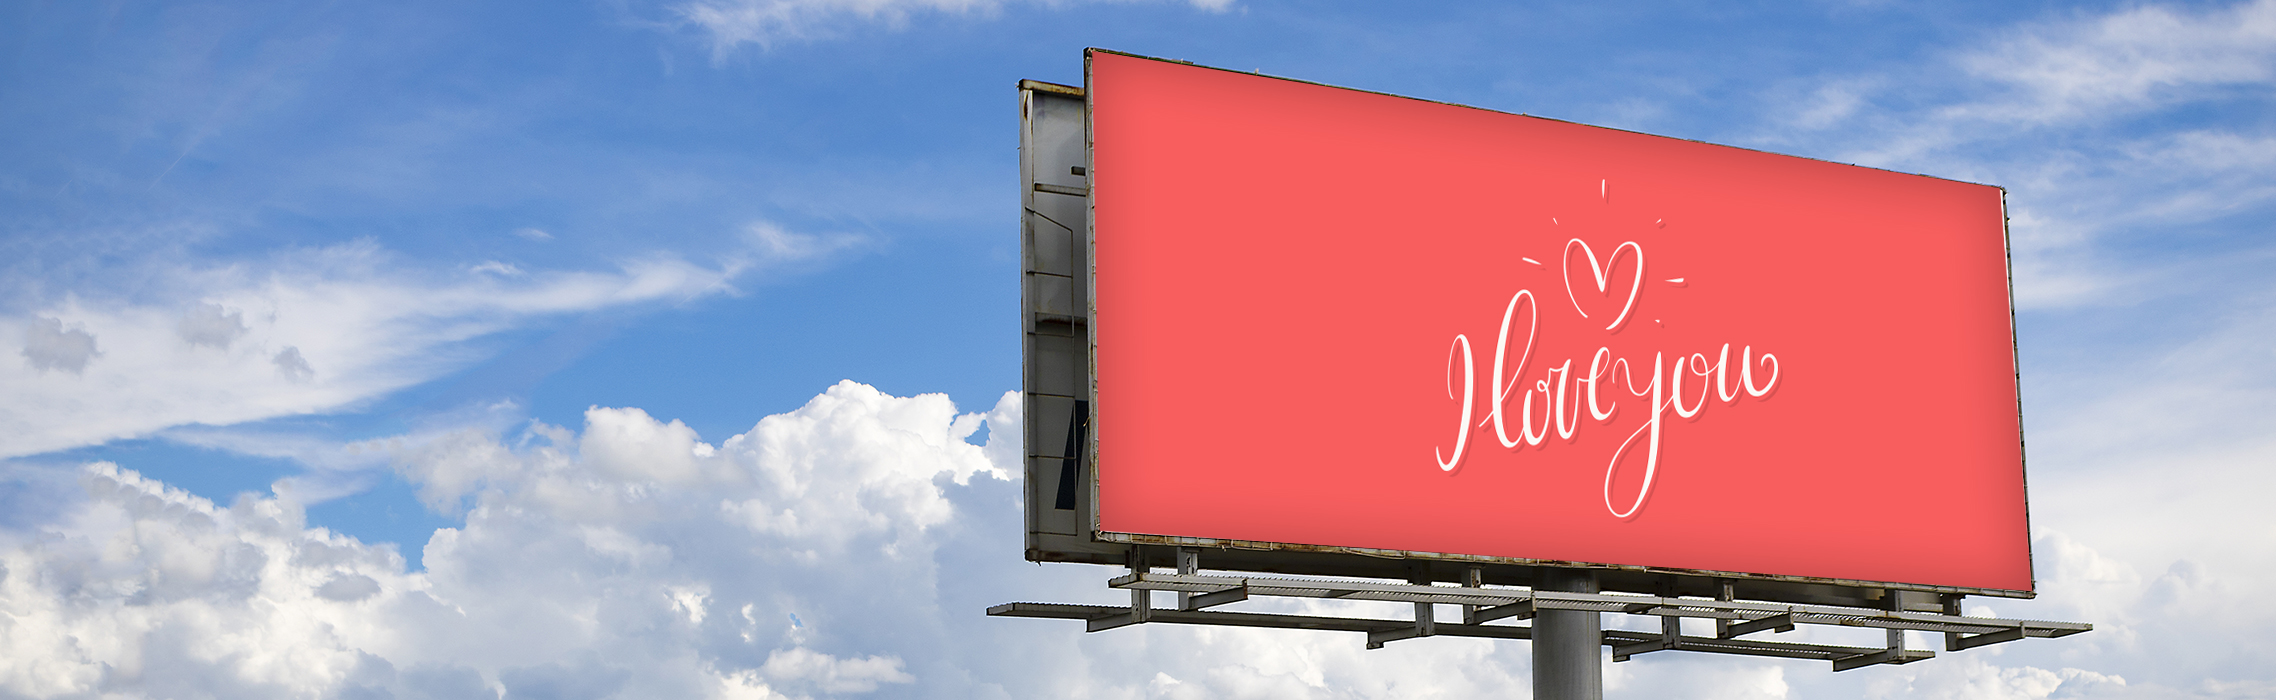 Over-The-Top Valentine's Billboards (And Some Savvy Brand Marketing)